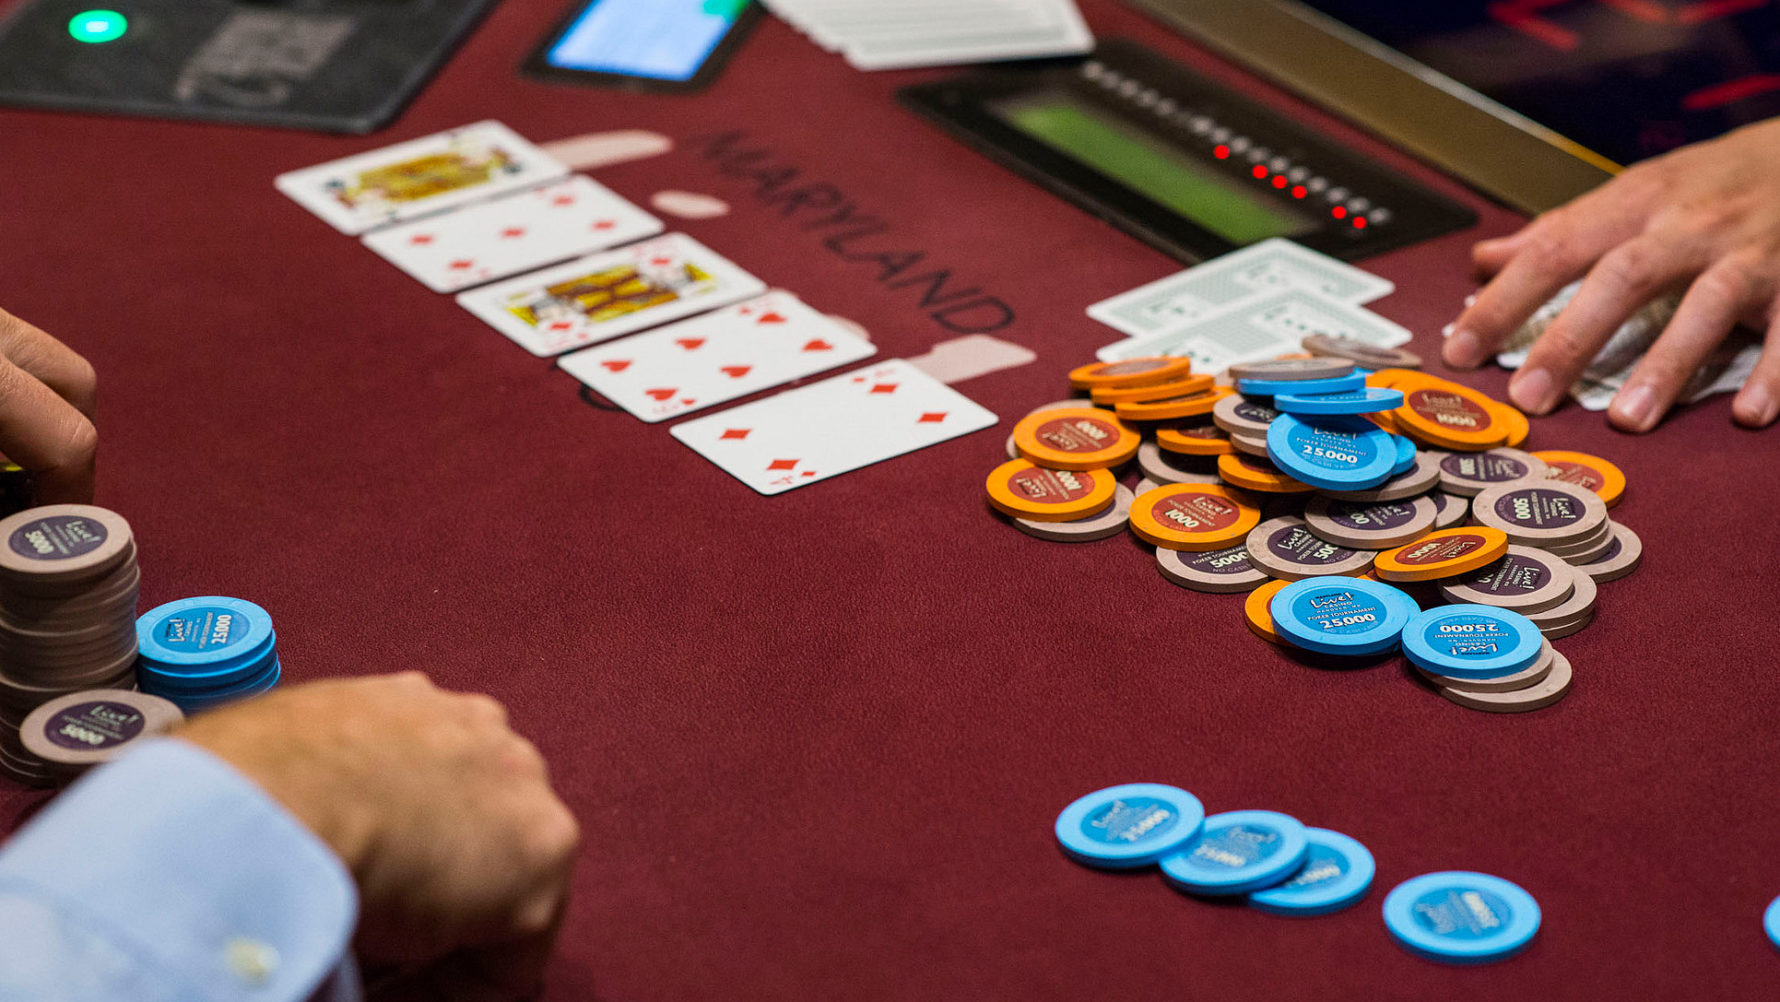 Maryland voters legalized slots in 2008 and table games in 2012, under the  expectation that casino revenues would flow to the state's schools.